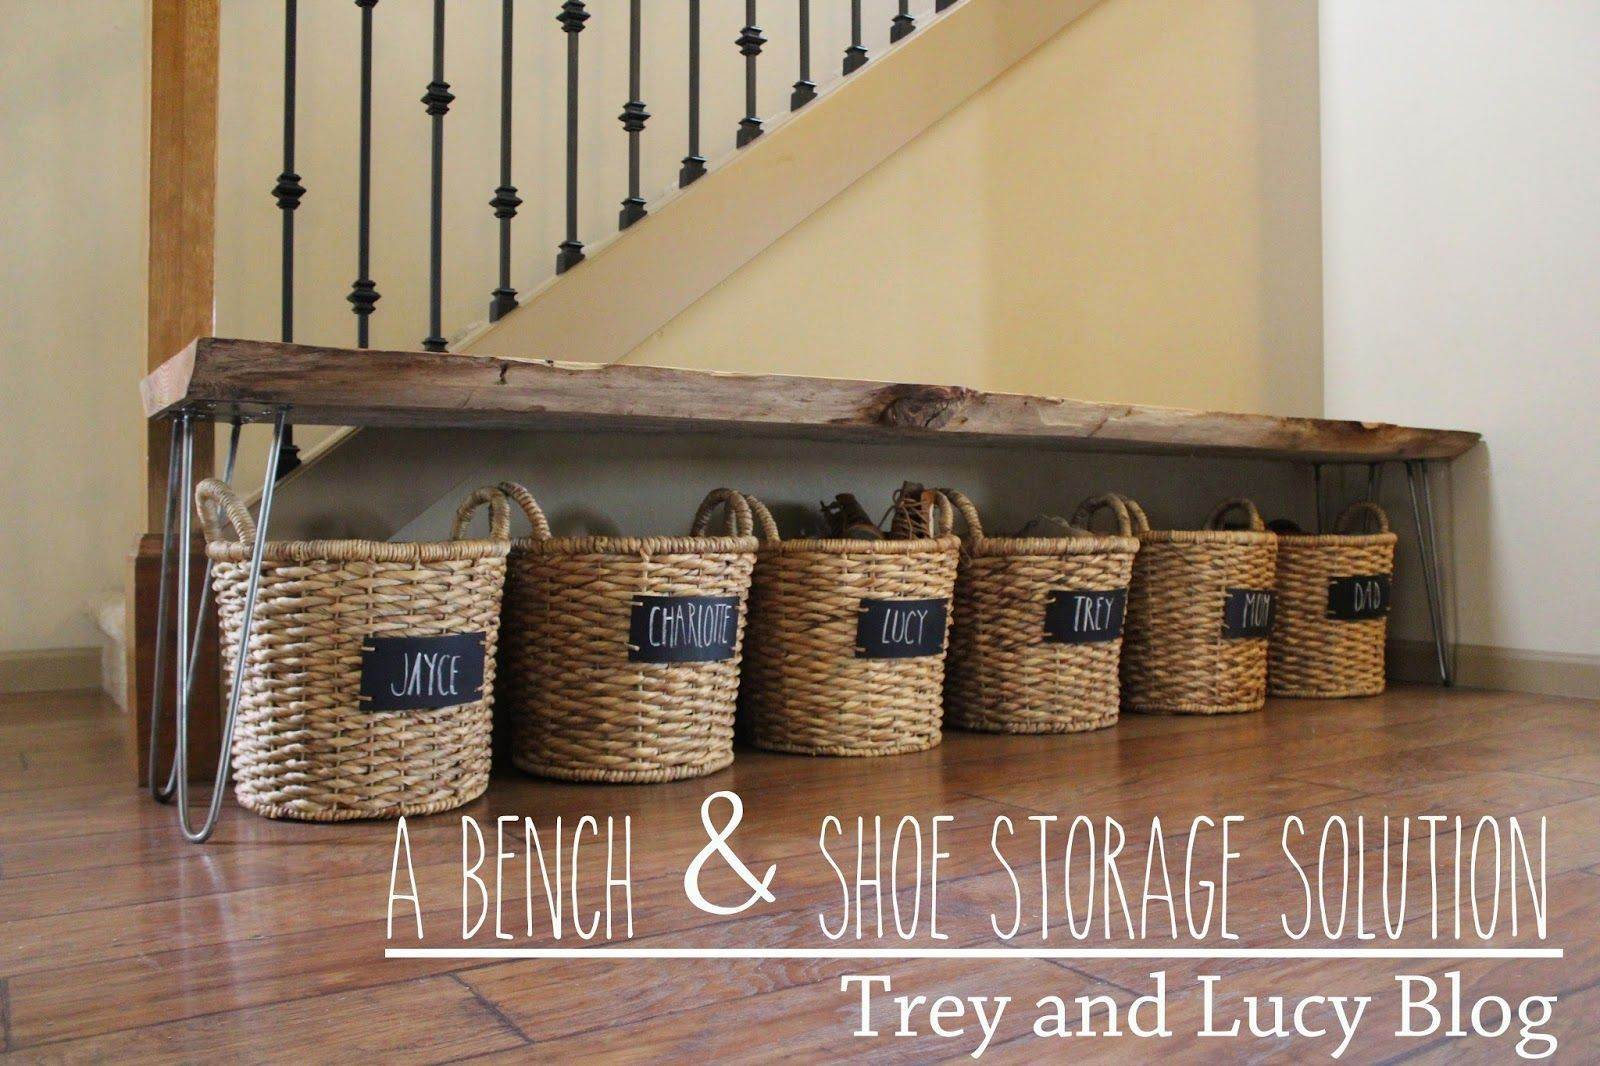 A Bench & Shoe Storage DIY Home and DIY Pinterest